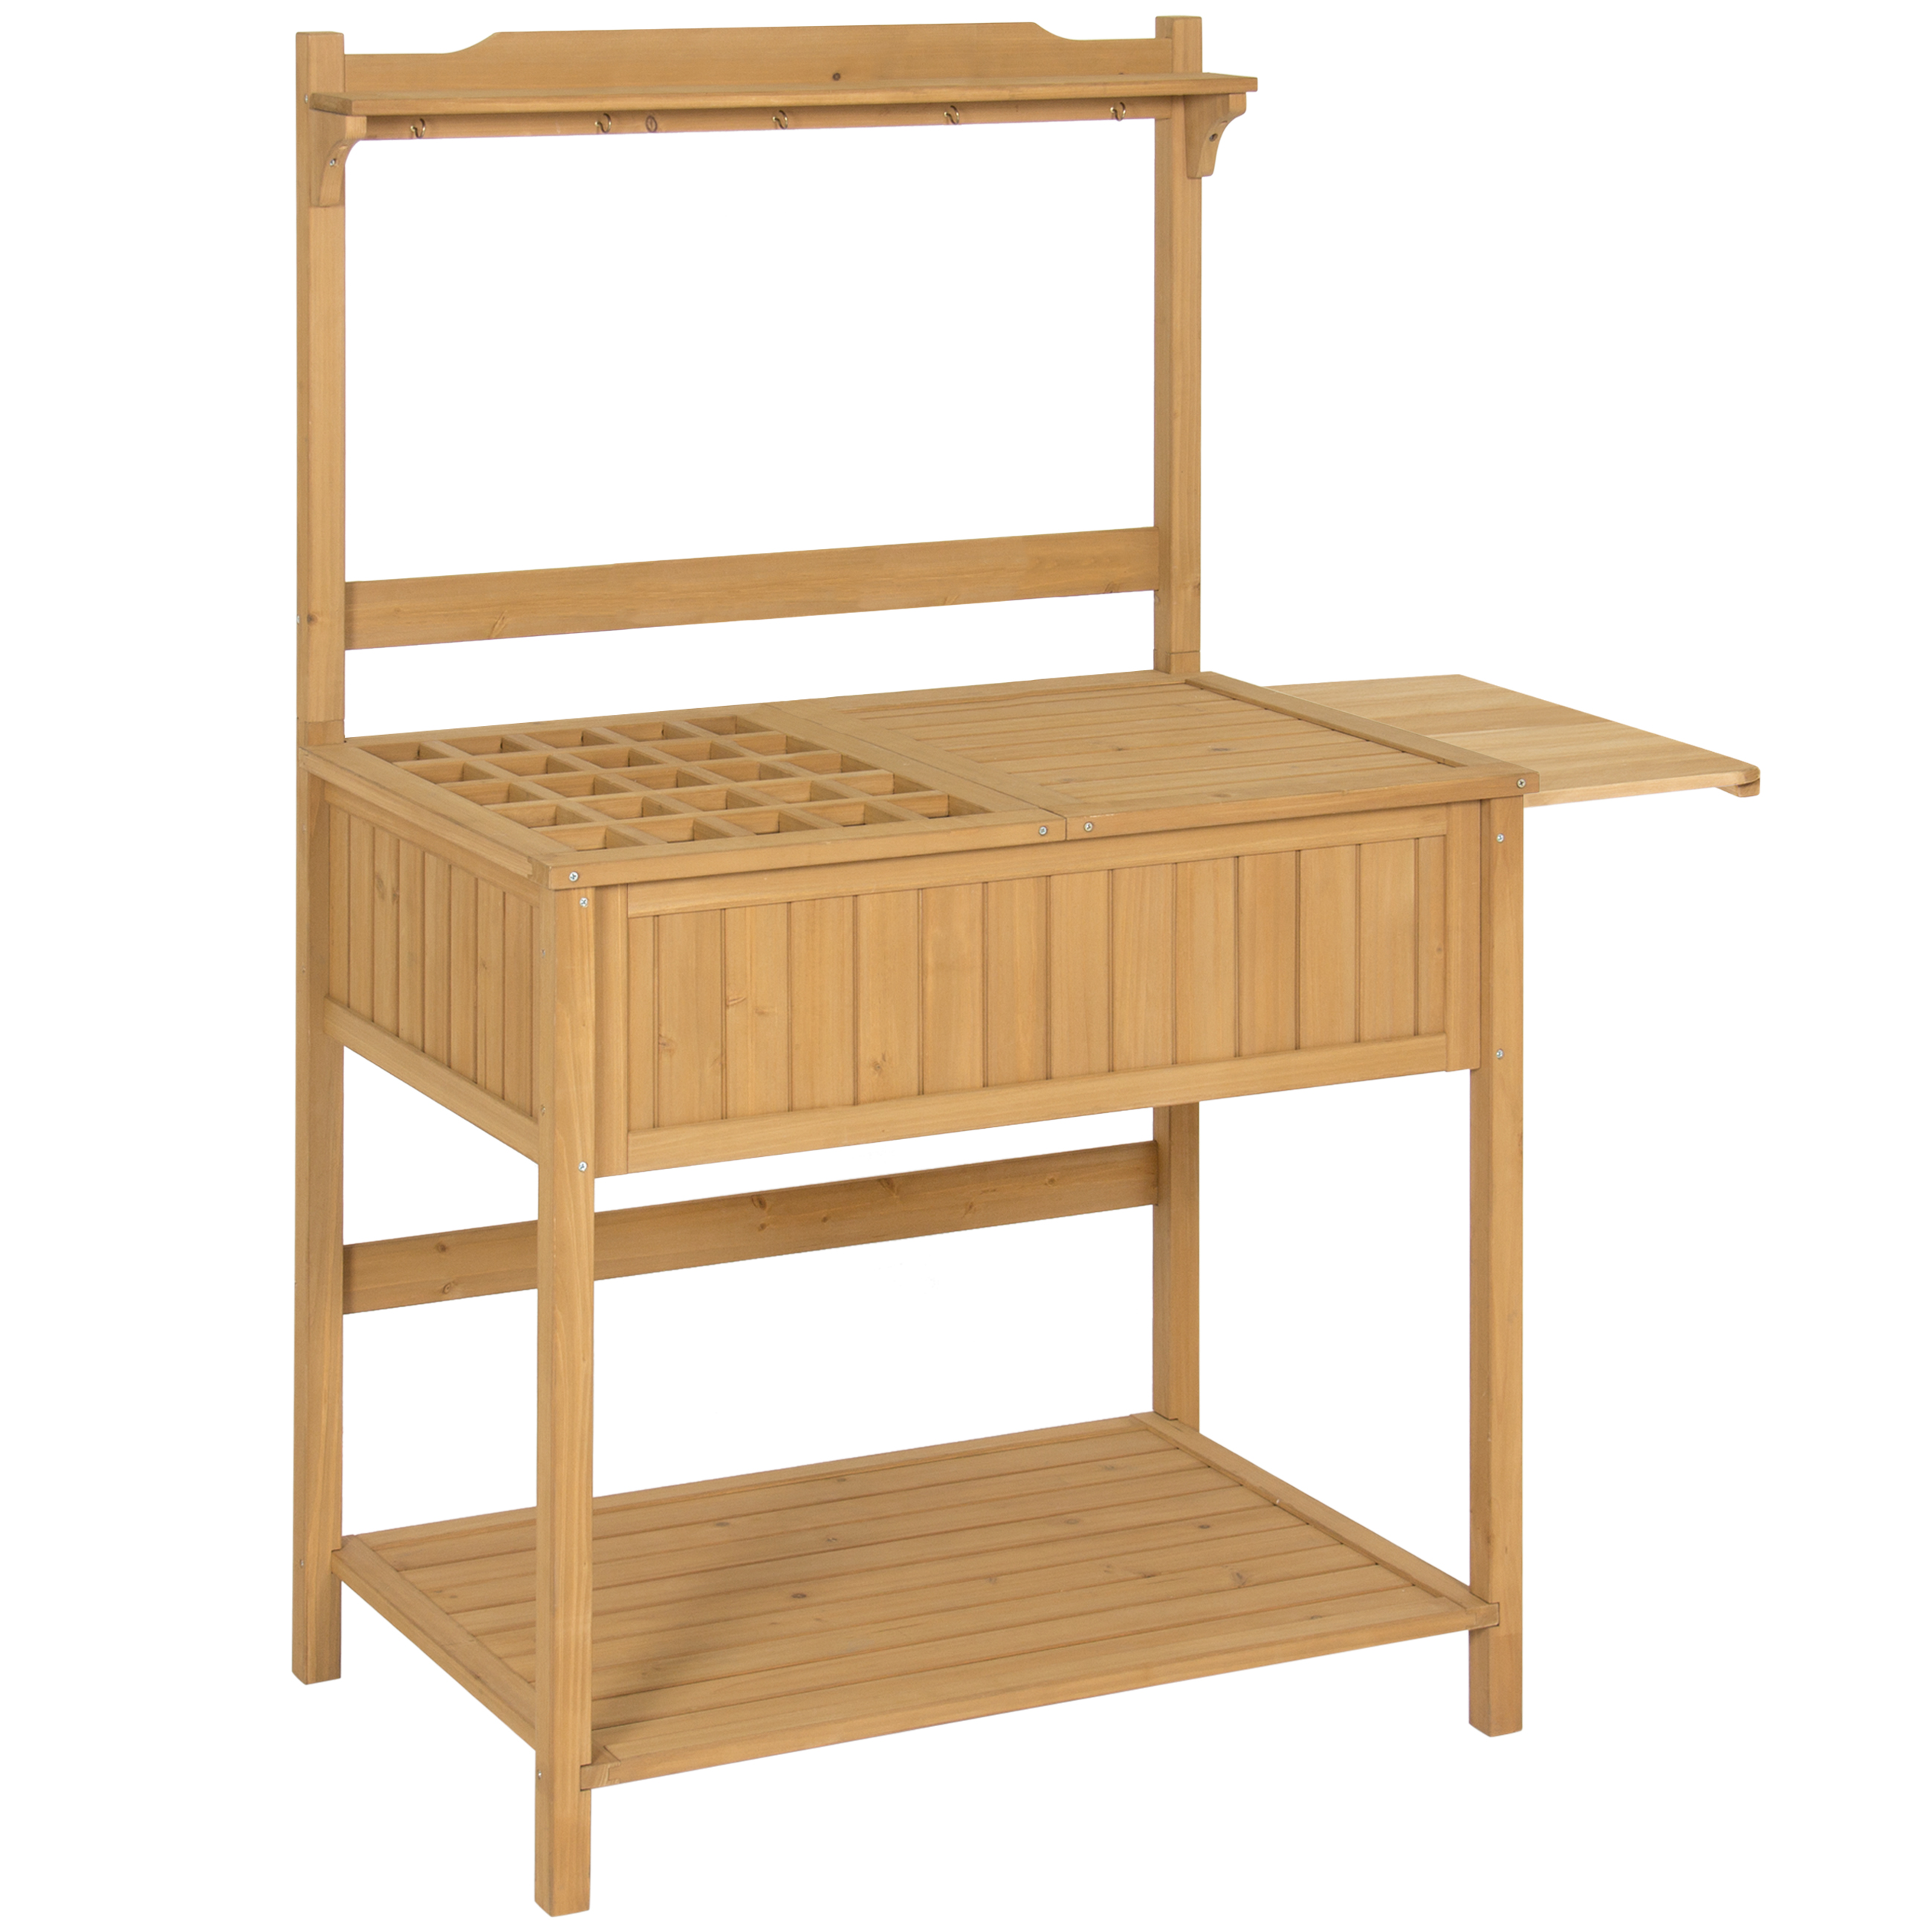 Best Choice Products Outdoor Garden Wooden Recessed Storage Potting Bench Work Station w/ Removable Lattice Top, 5 Tool Hooks, Tabletop Extension, Lower Shelf - Natural